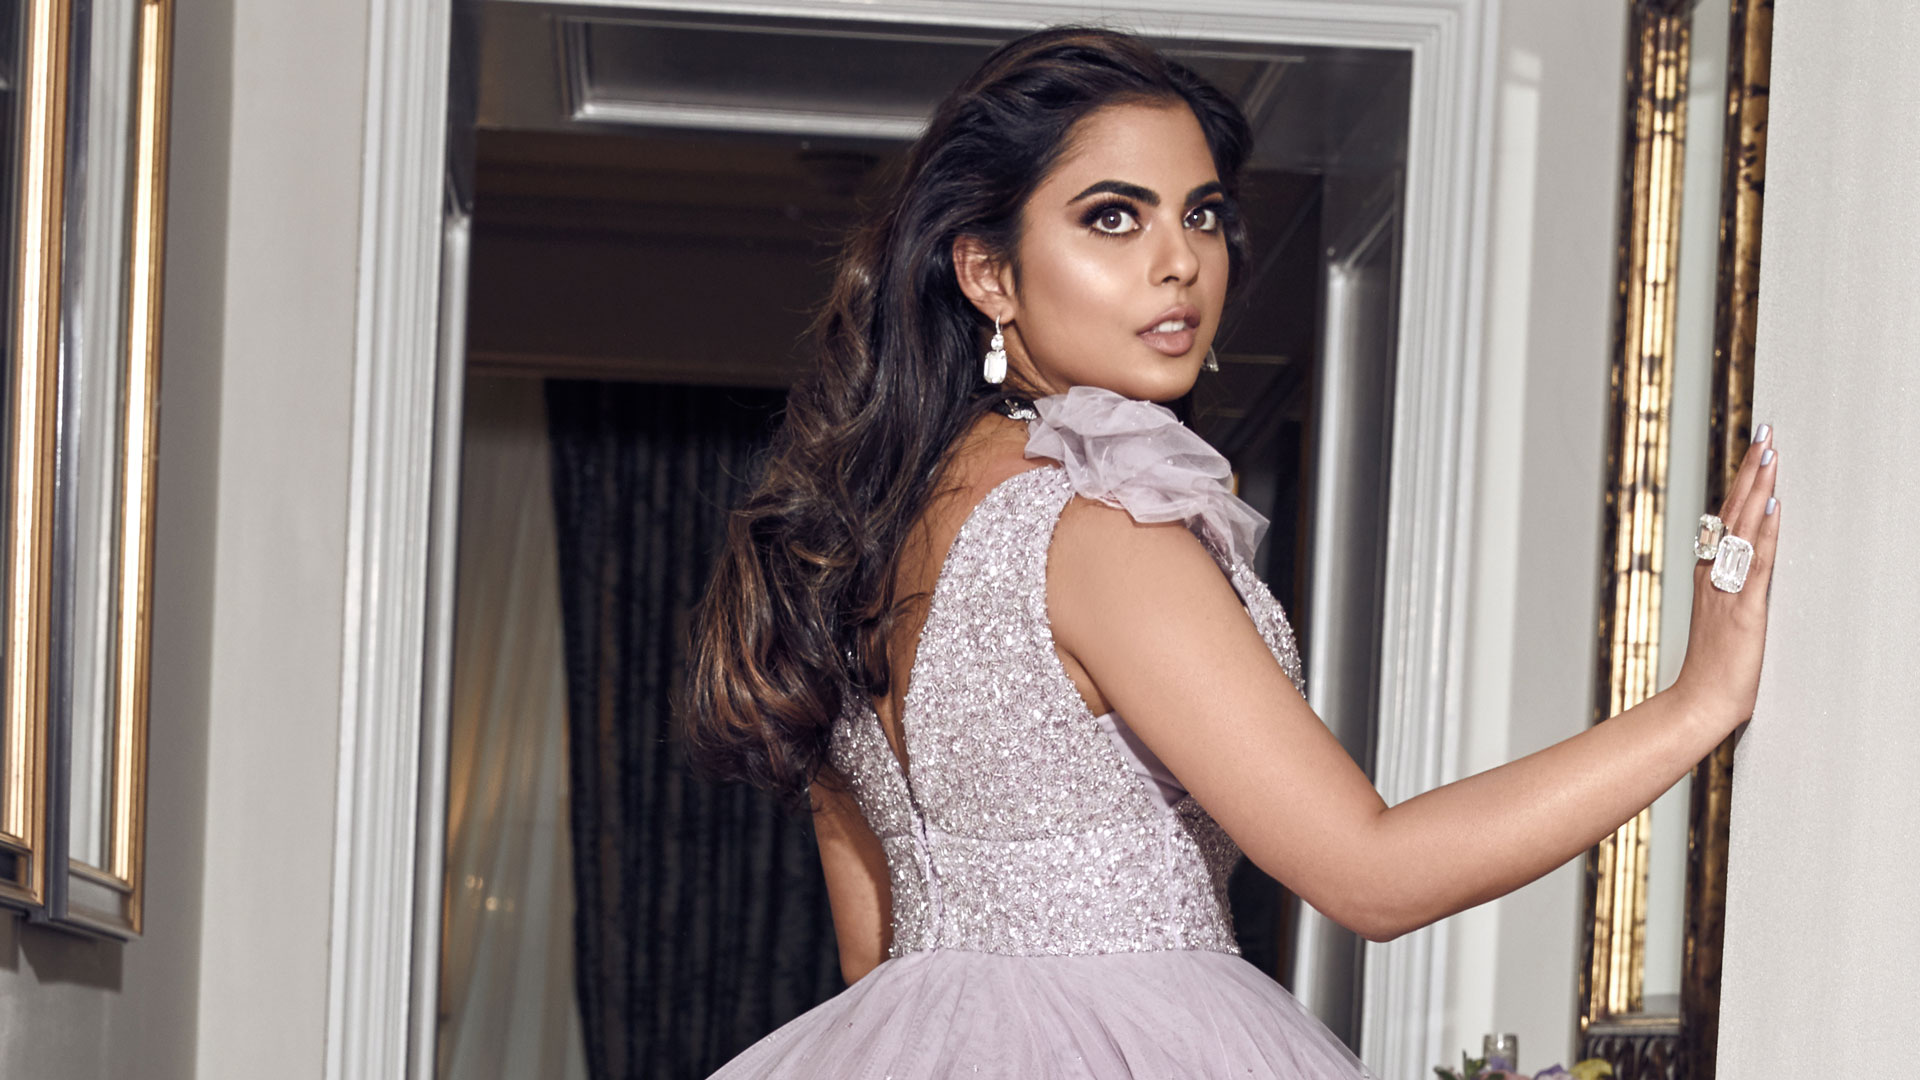 MET Gala 2019: Isha Ambani Looks Like a Dream Wearing a Gorgeous Lilac Feather Gown and Diamond Jewellery